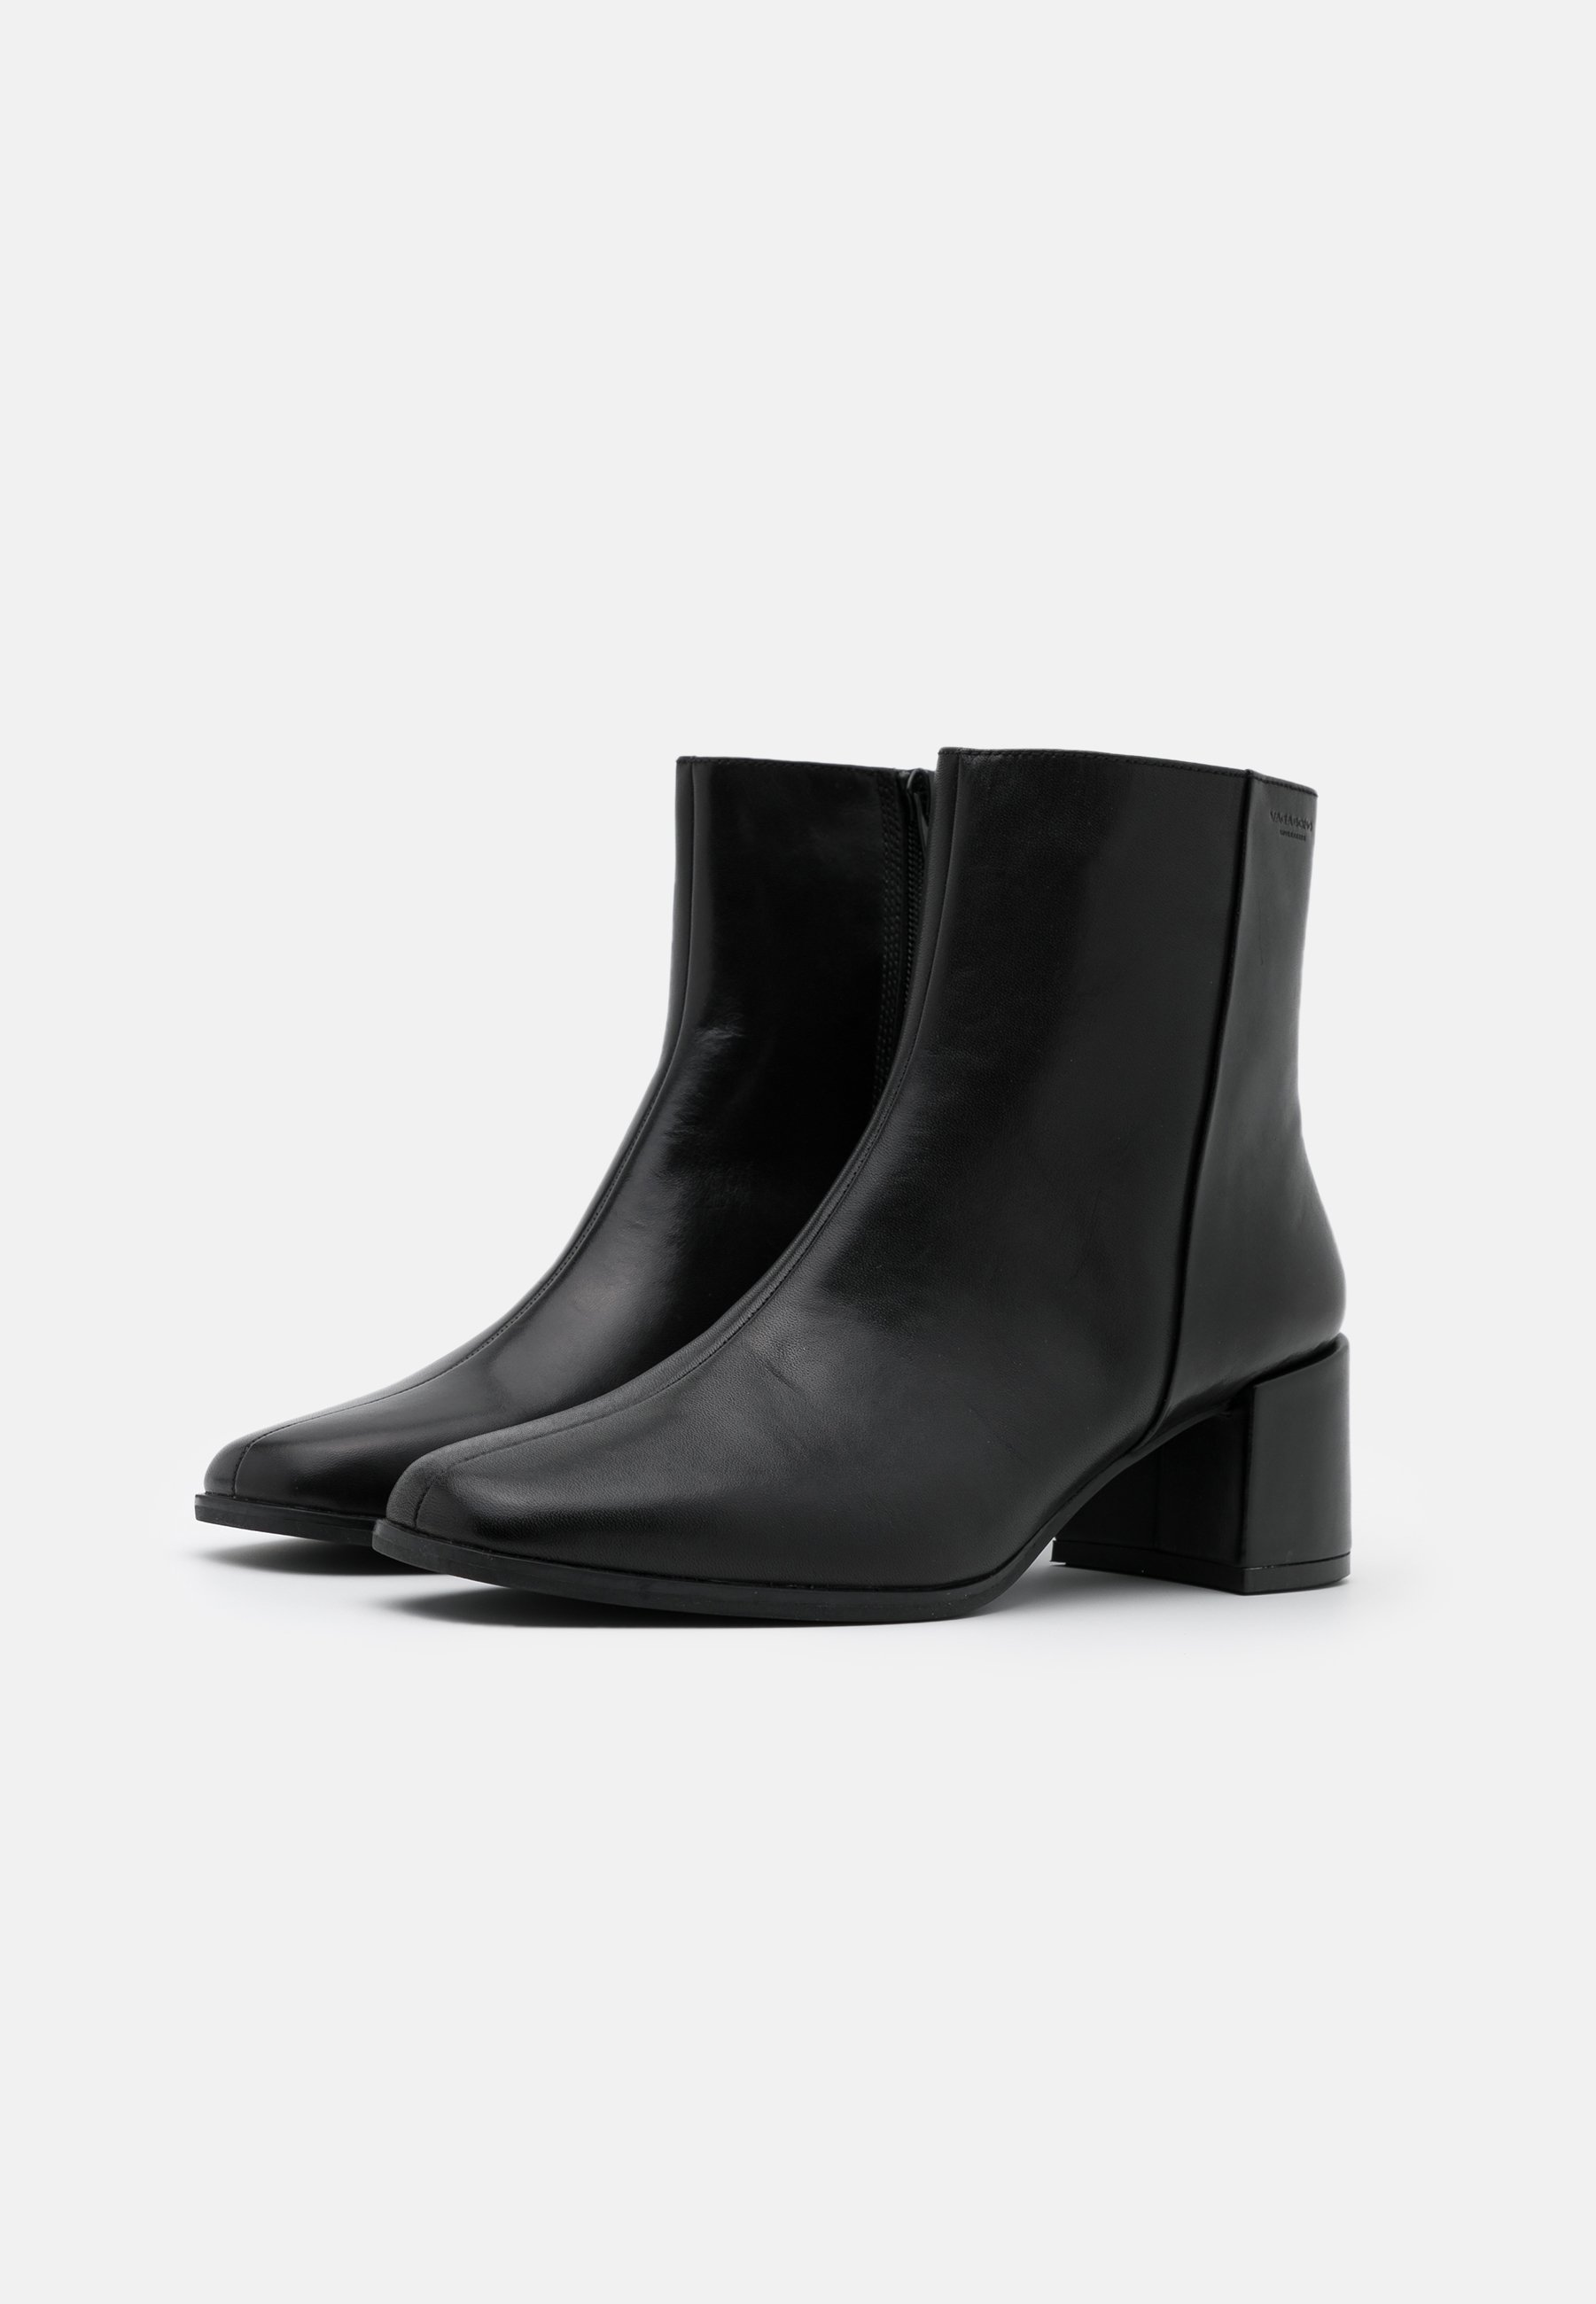 Affordable Purchase Women's Shoes Vagabond STINA Classic ankle boots black QqMQeW4Cf nLDSQs47F